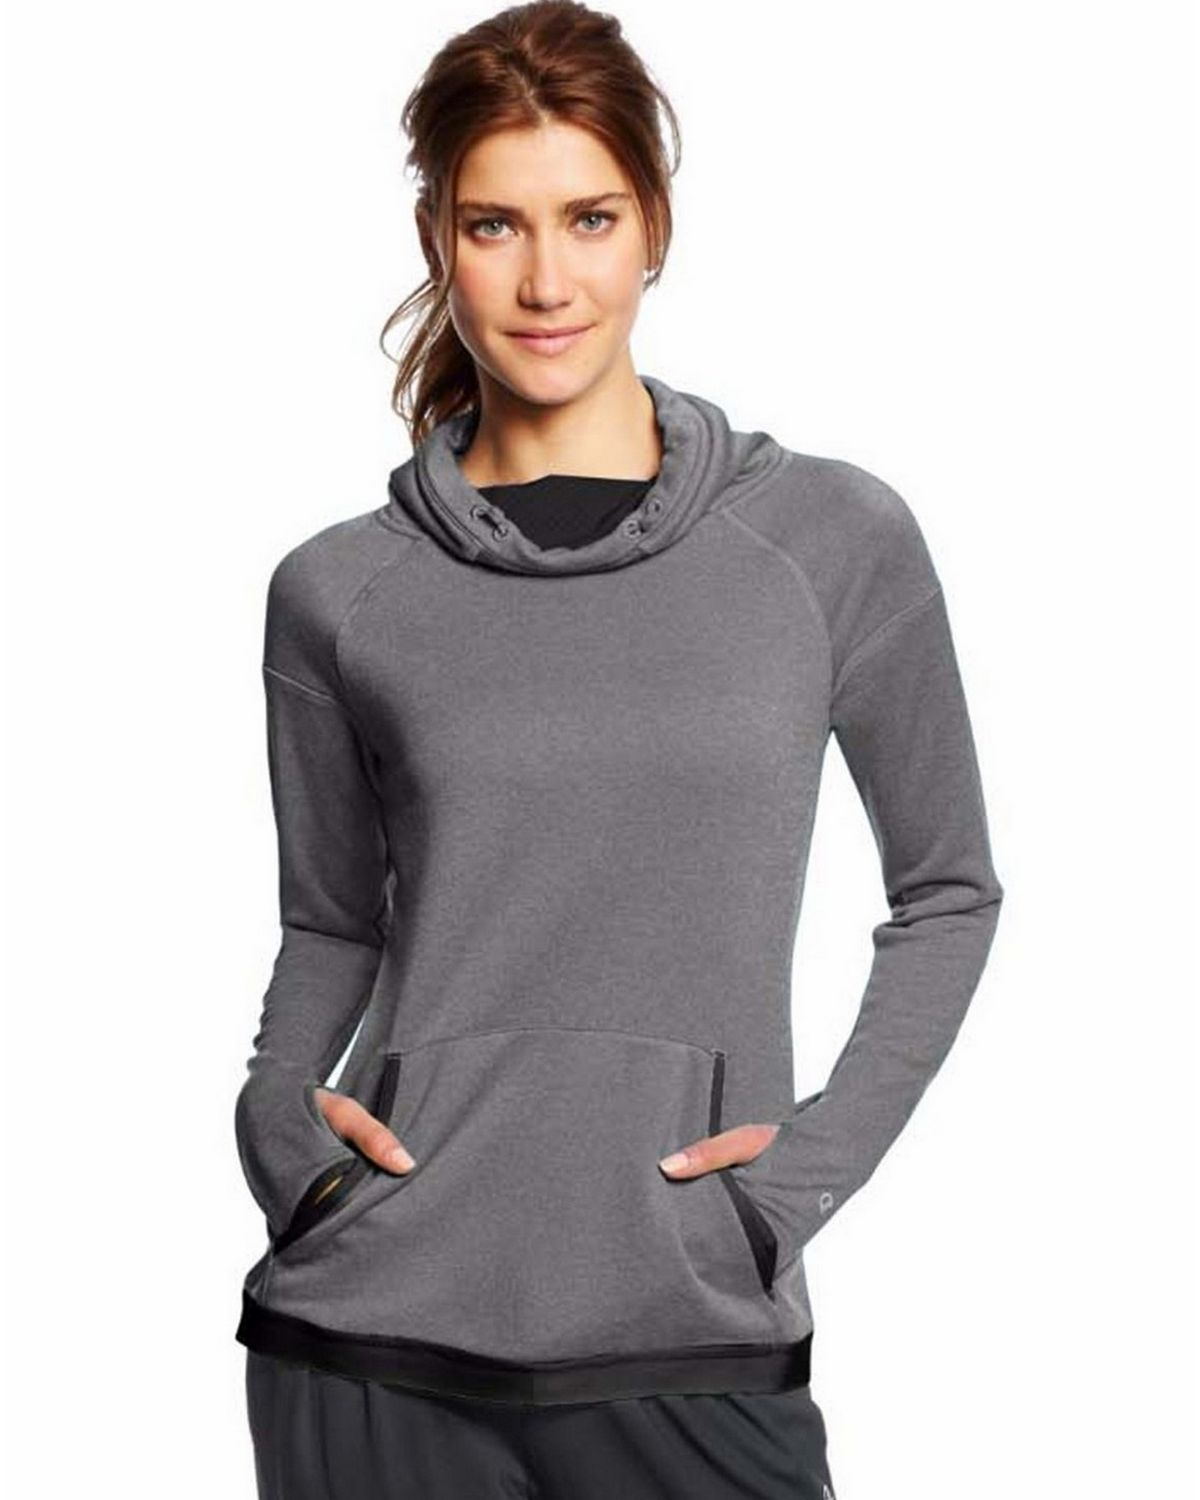 Champion W0995 Training Cover-Up - Granite Heather/Black - L W0995